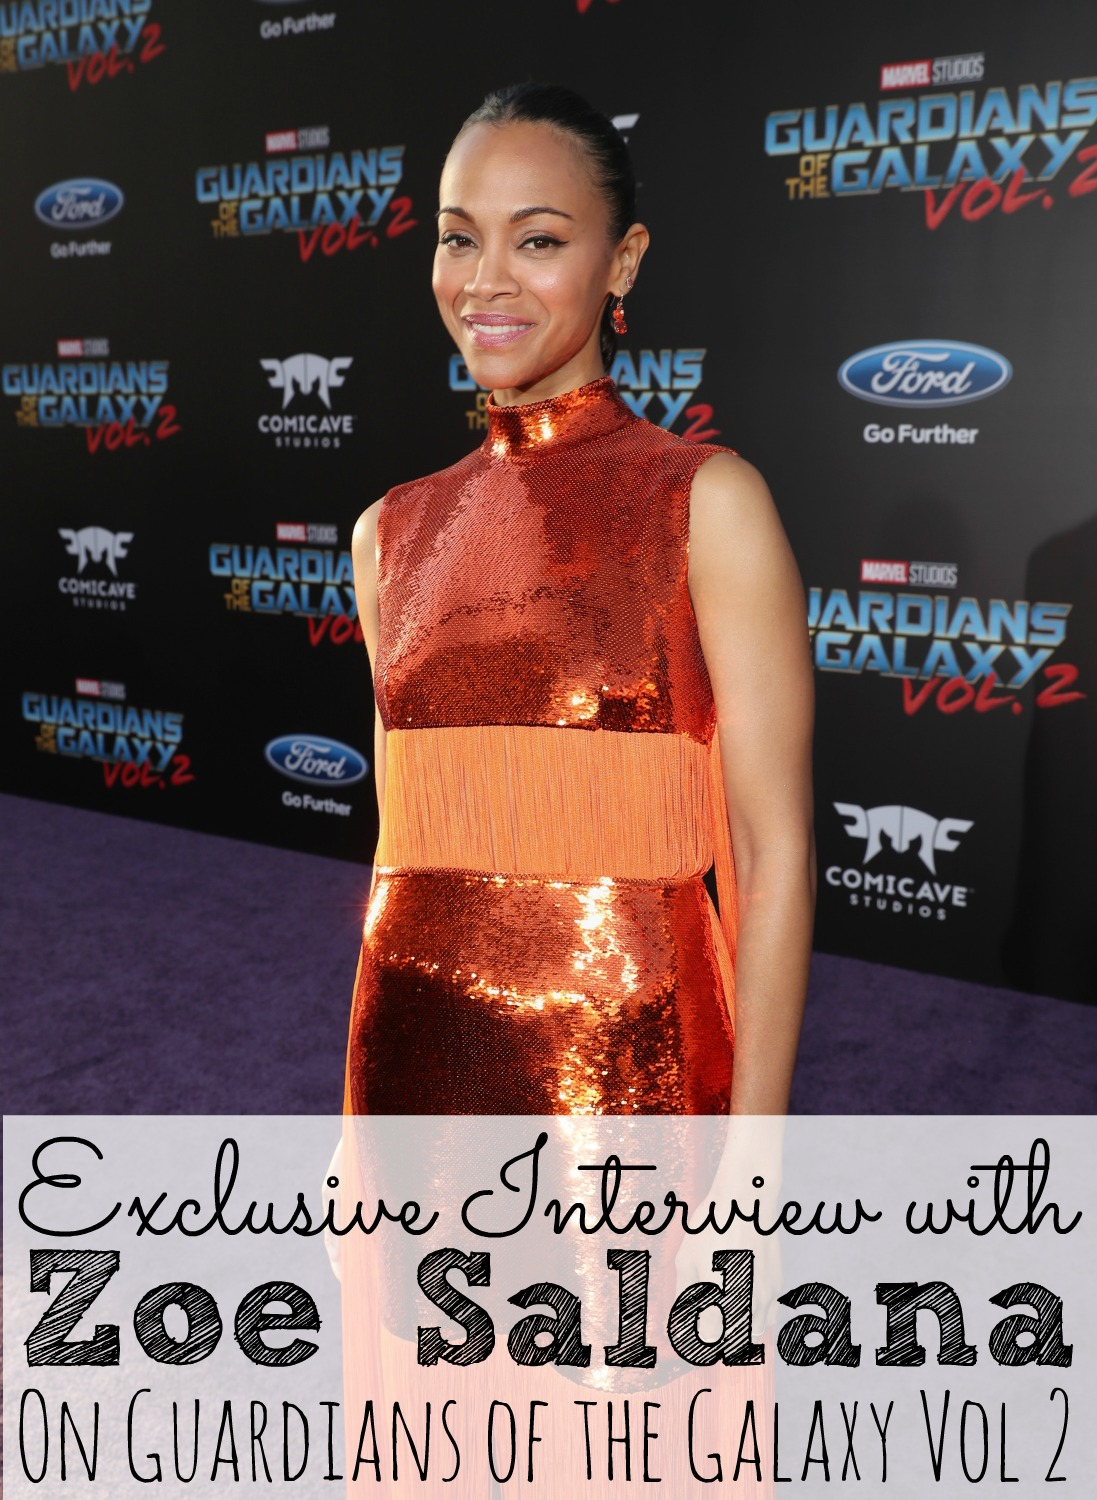 Exclusive Interview with Zoe Saldana On Guardians of the Galaxy Vol 2